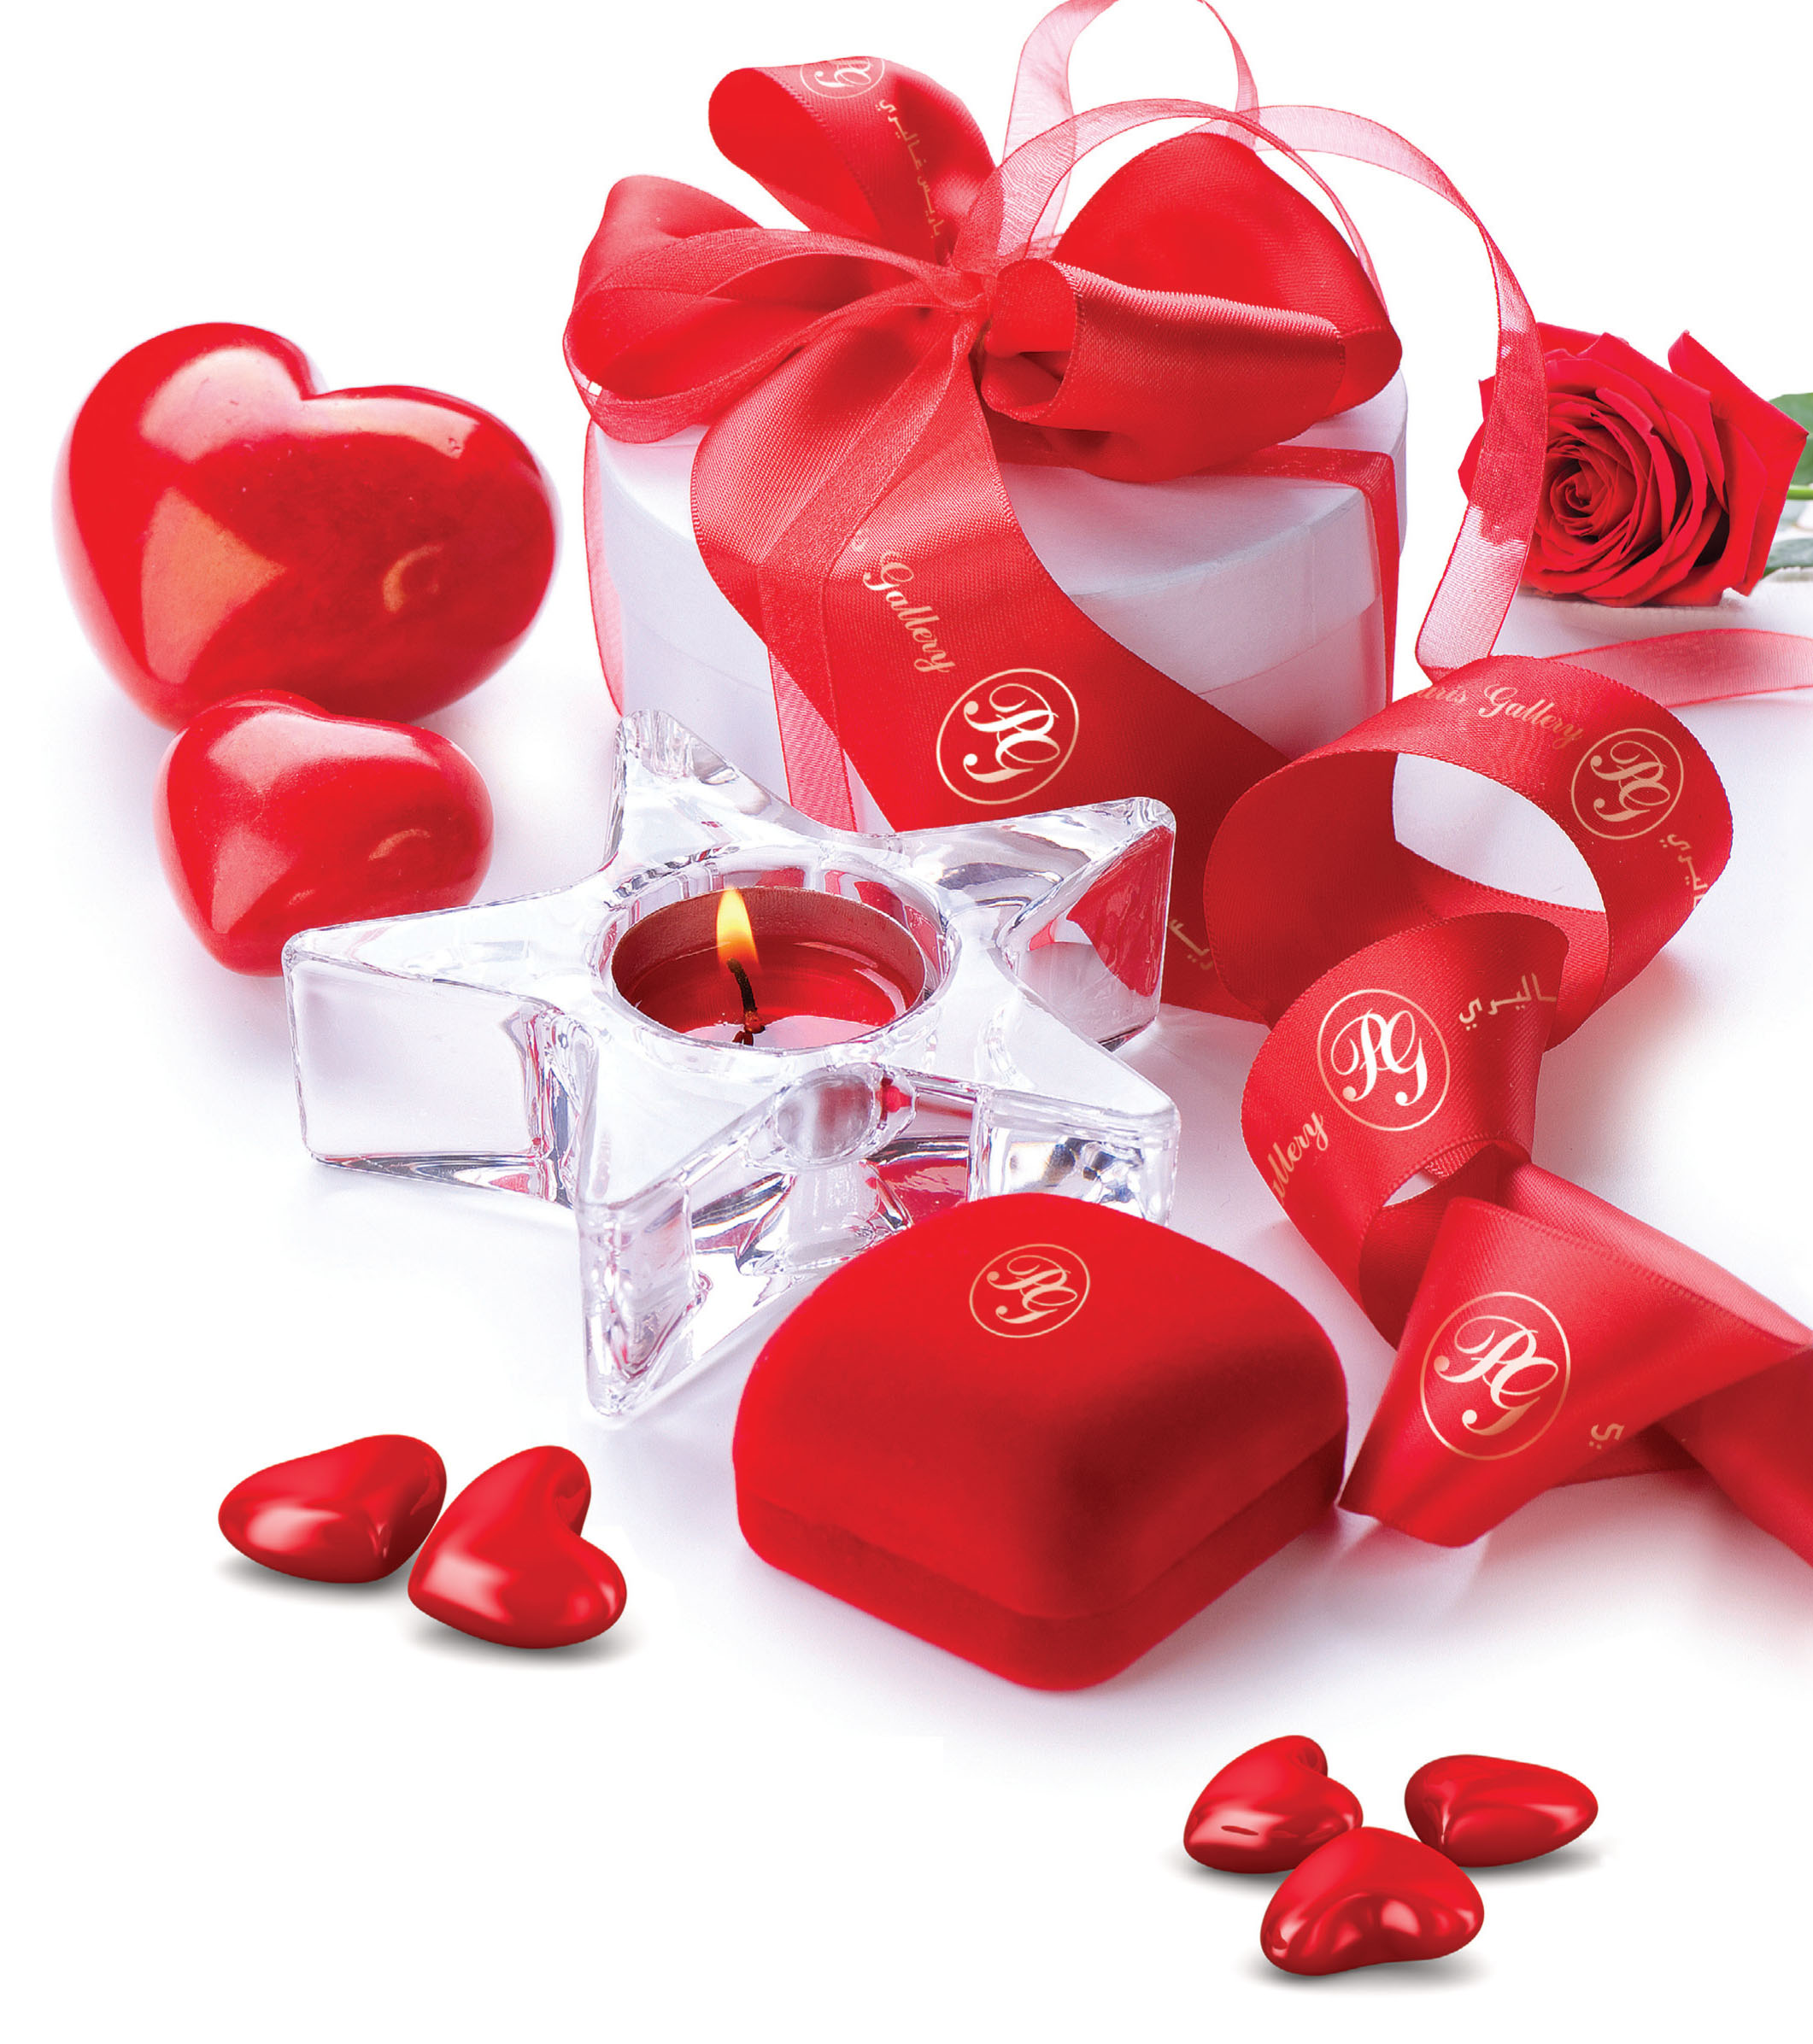 Paris Gallery Valentine's Day Exclusives | The Beauty Gossiper